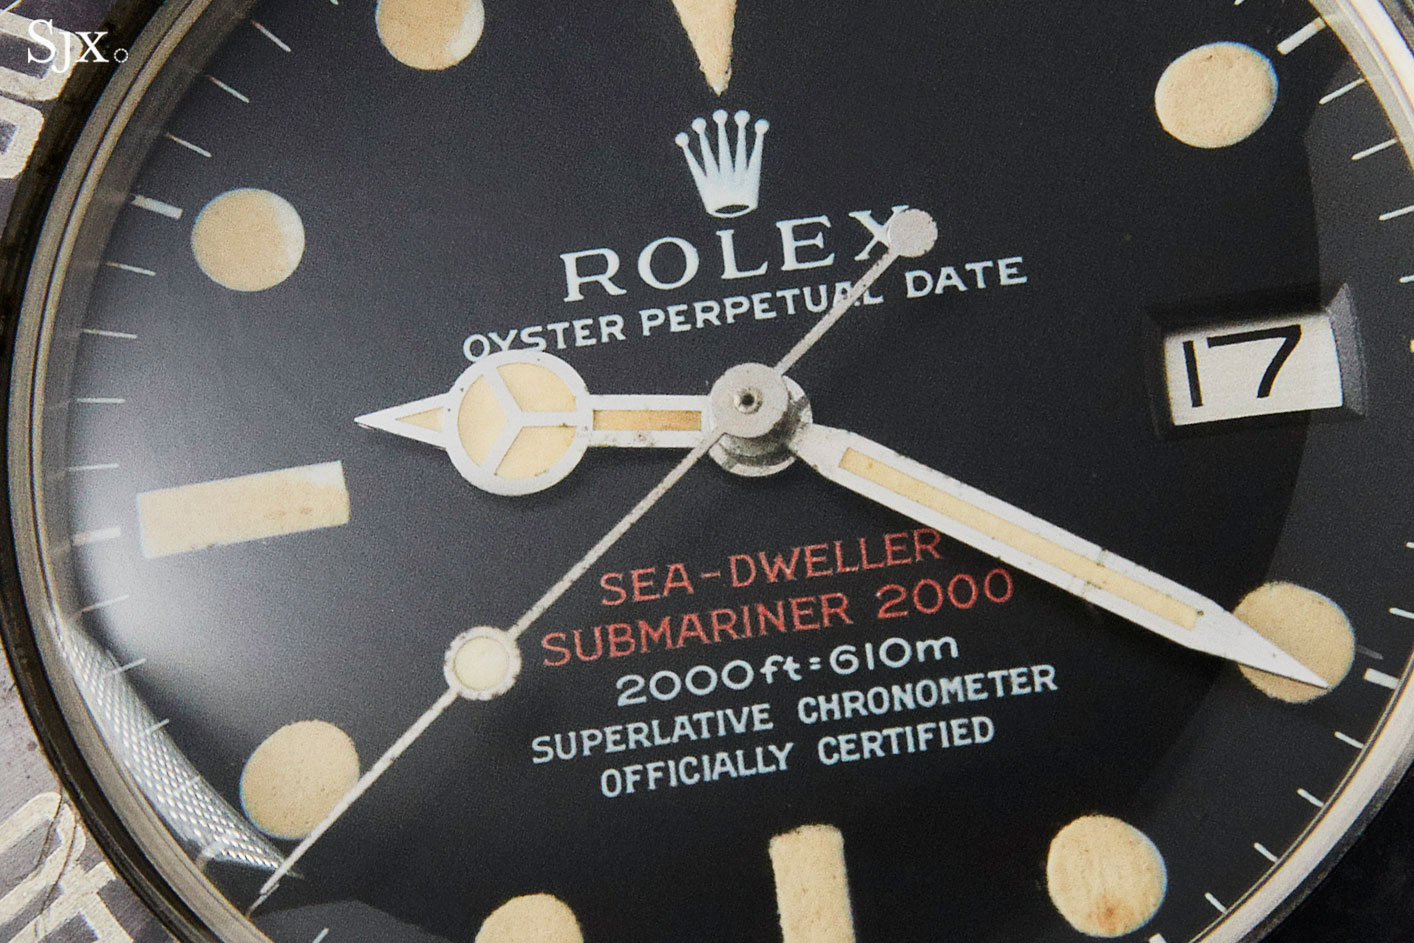 Rolex Sea-Dweller 1665 no escape valve 2